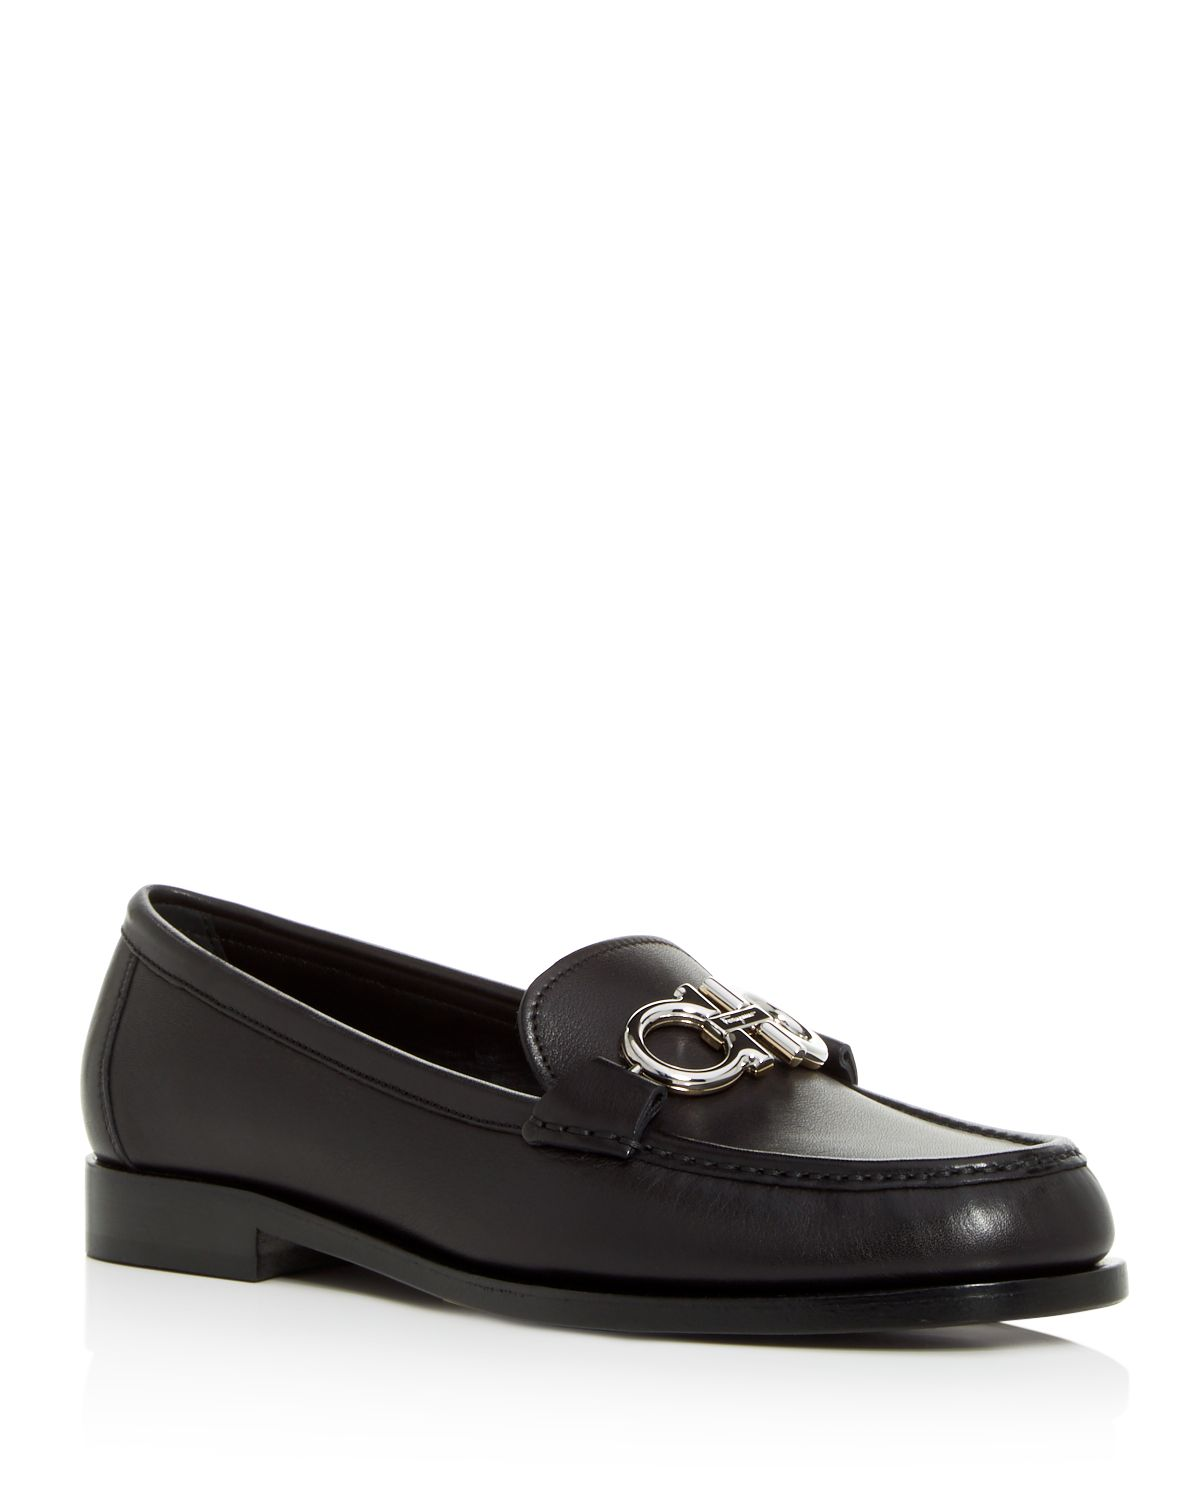 Salvatore Ferragamo Women's Rolo Reversible Gancini Leather Loafers